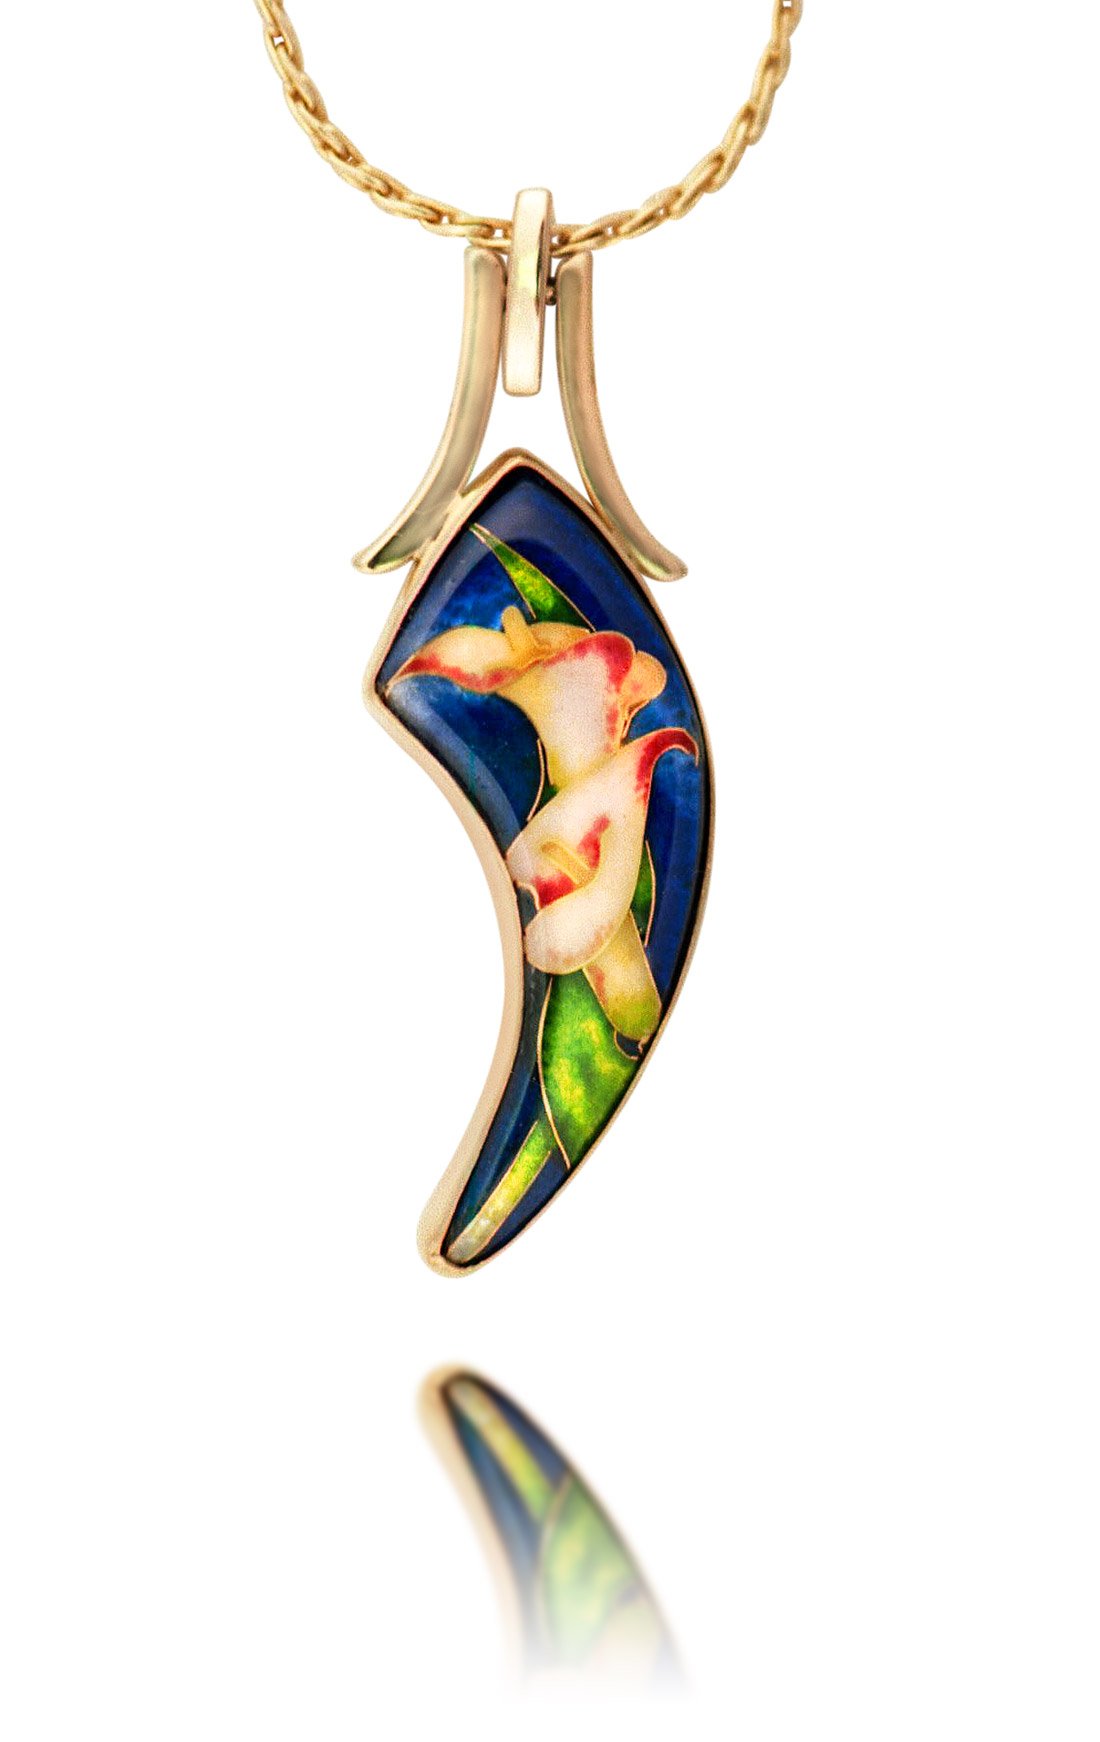 Cloisonne Jewelry | Calla Lillies | Enamel Jewelry created by Patsy Croft